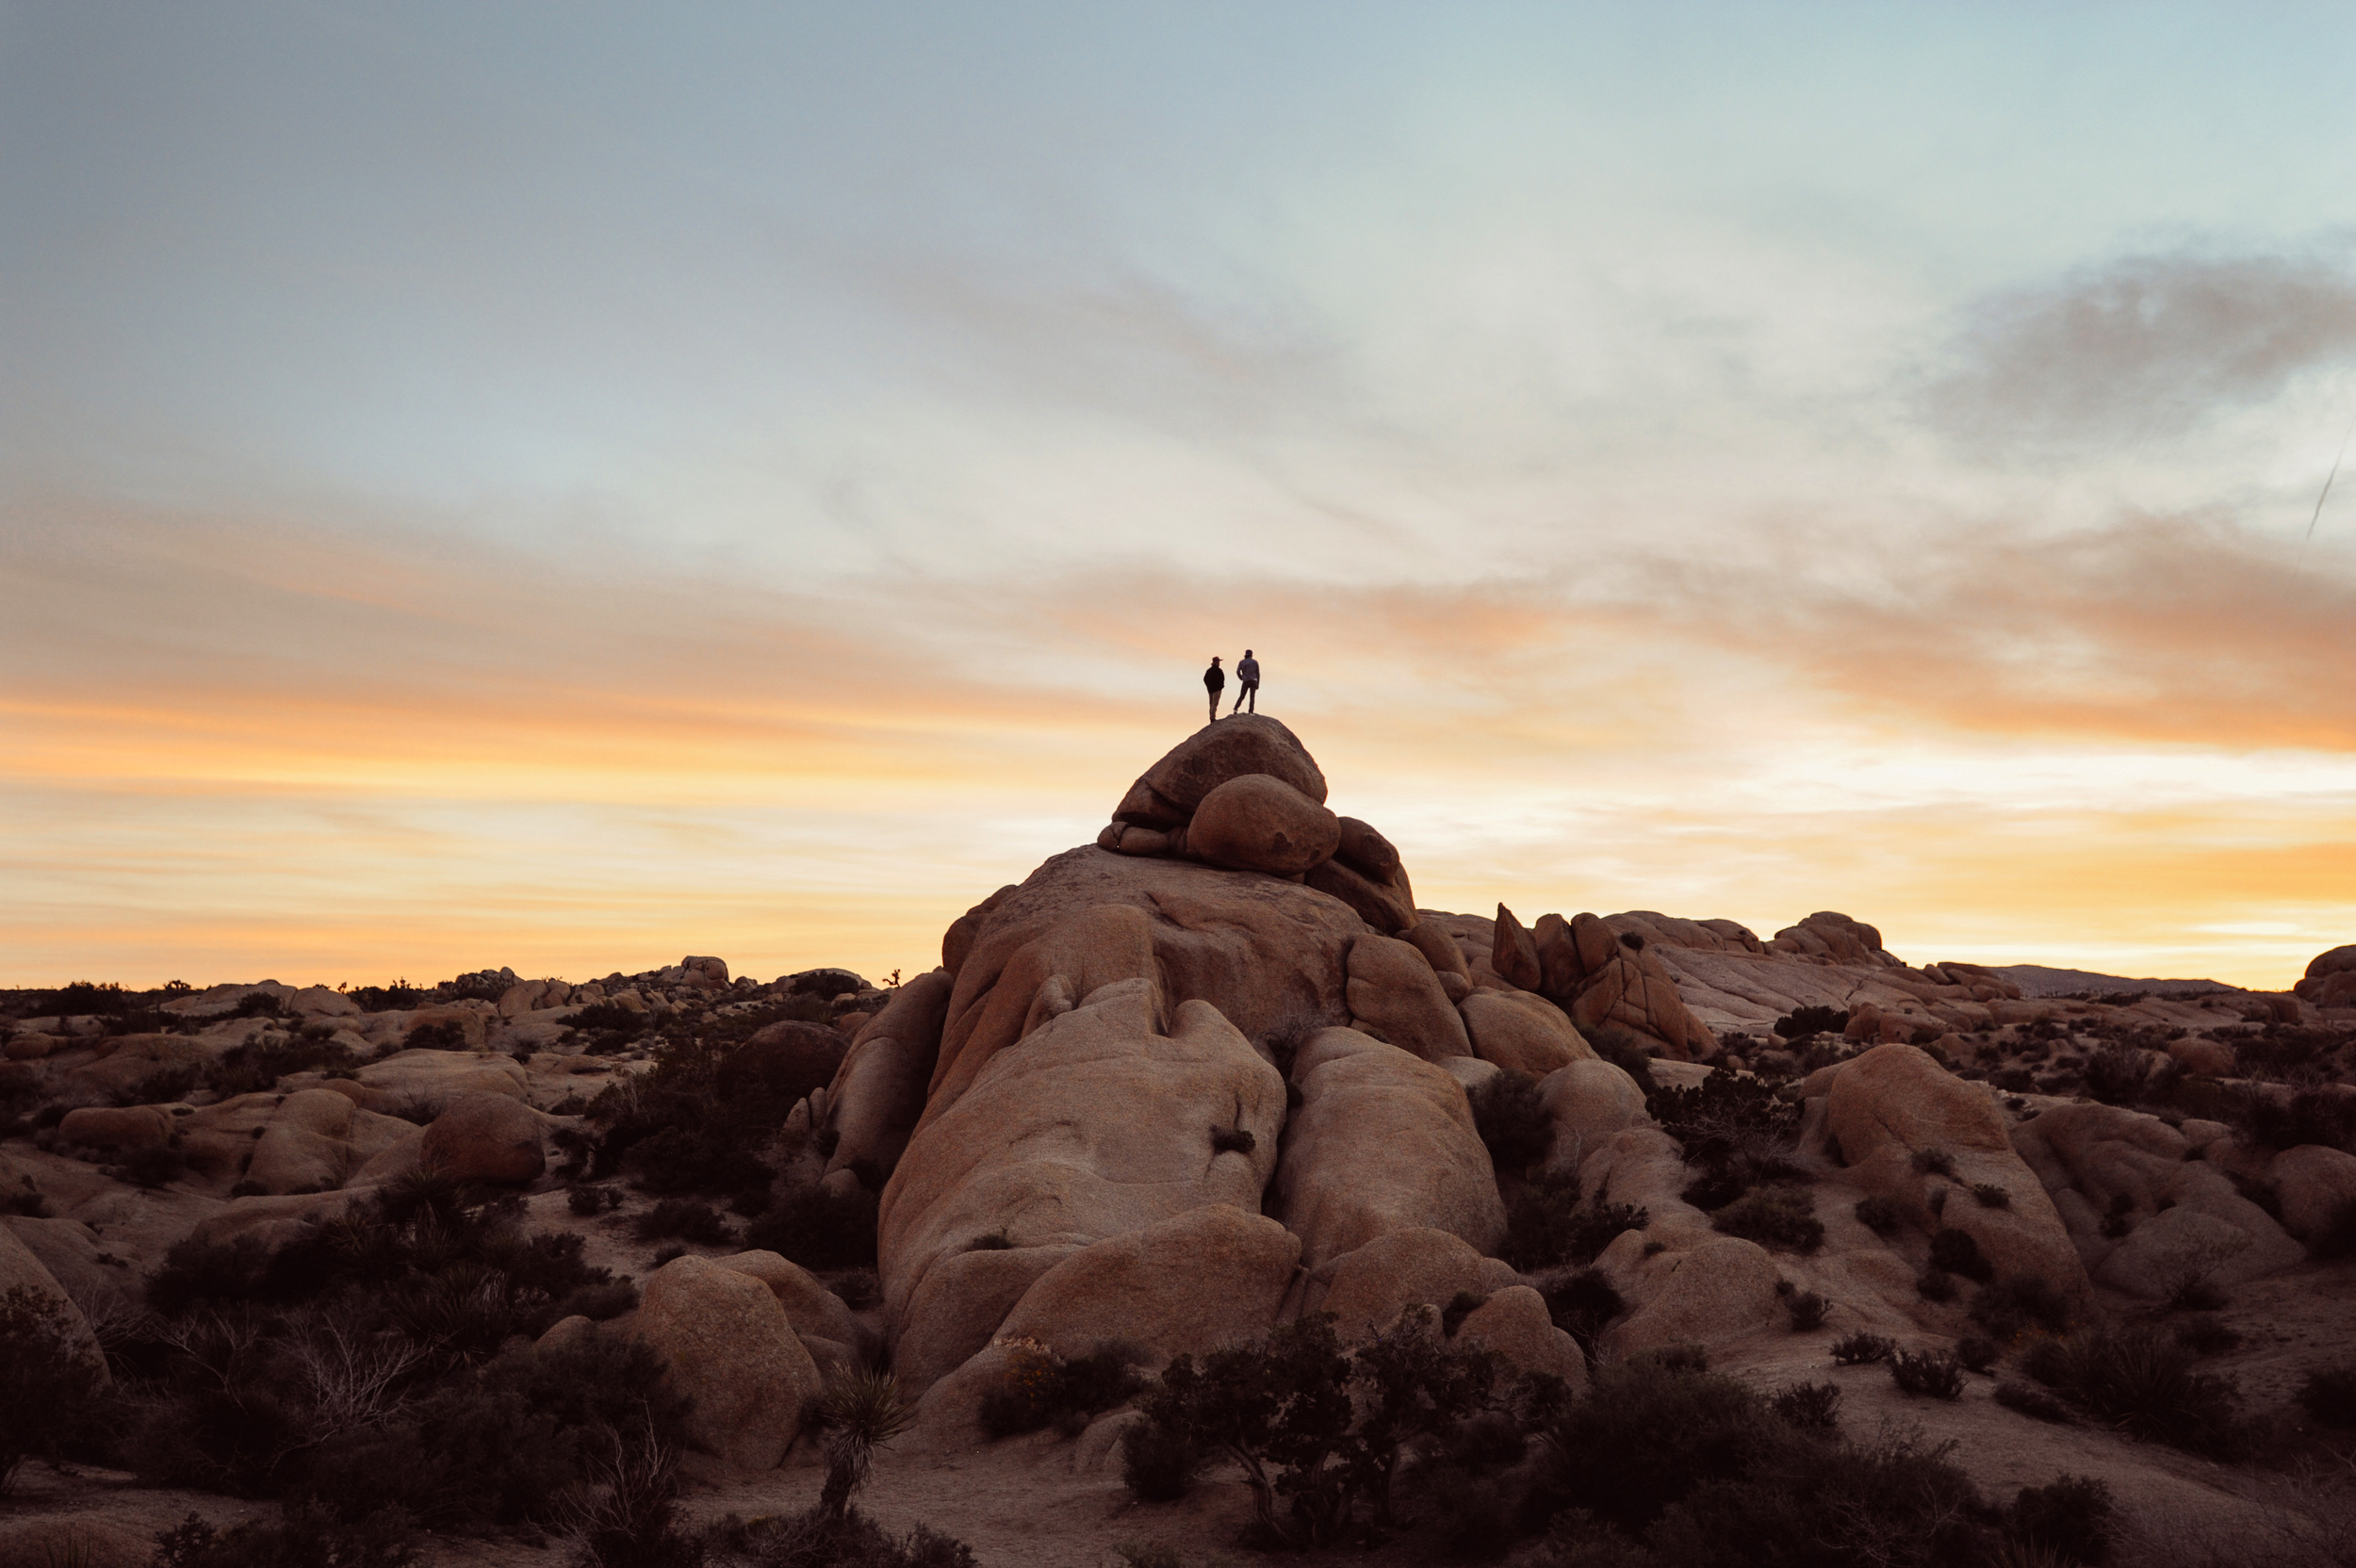 Nothing quite like these giant boulders in Joshua Tree National Park.